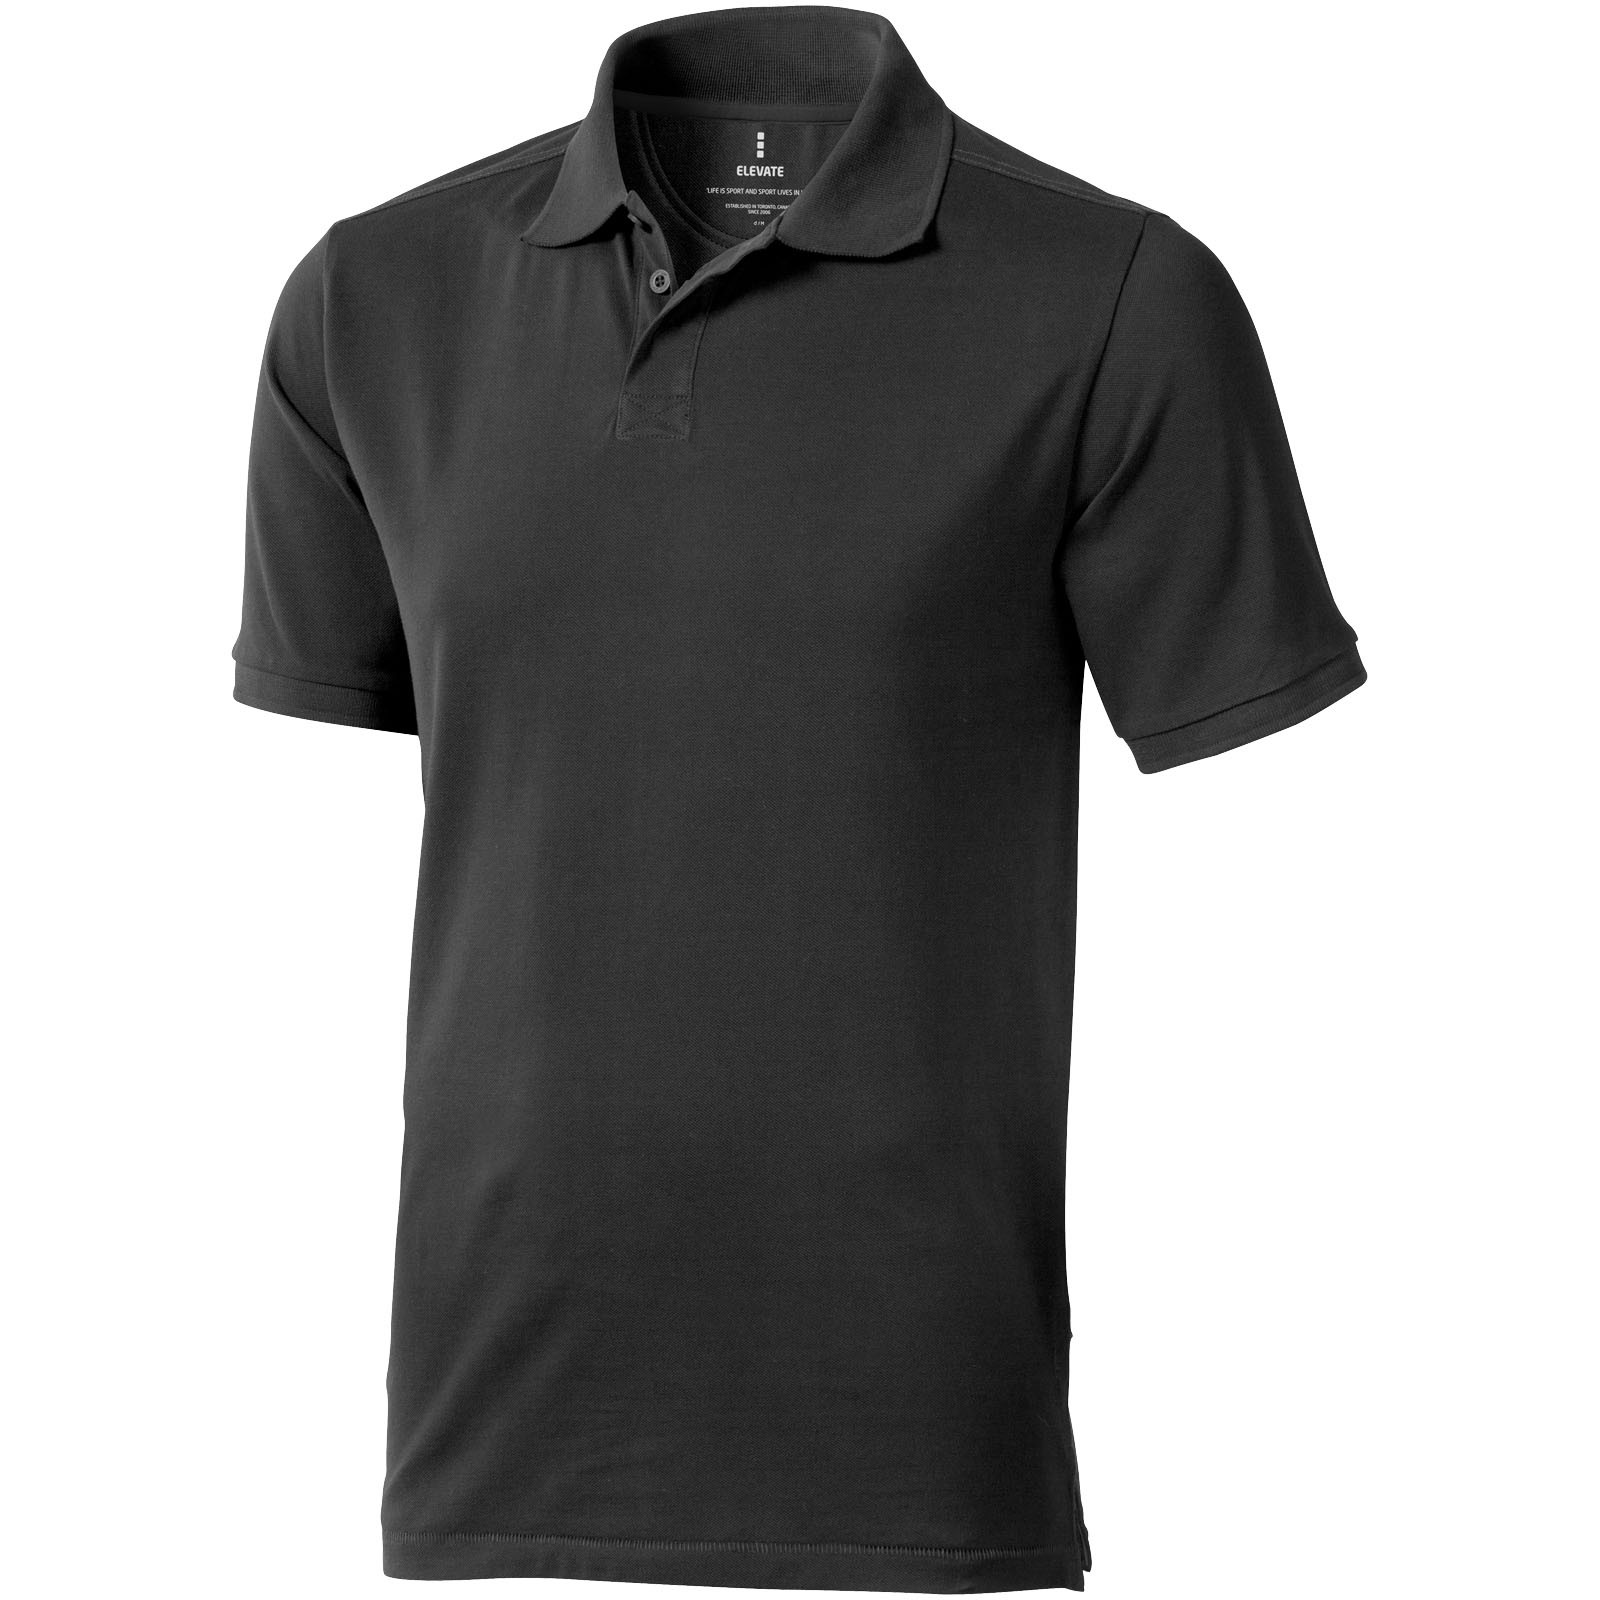 Calgary short sleeve men's polo - Anthracite / S